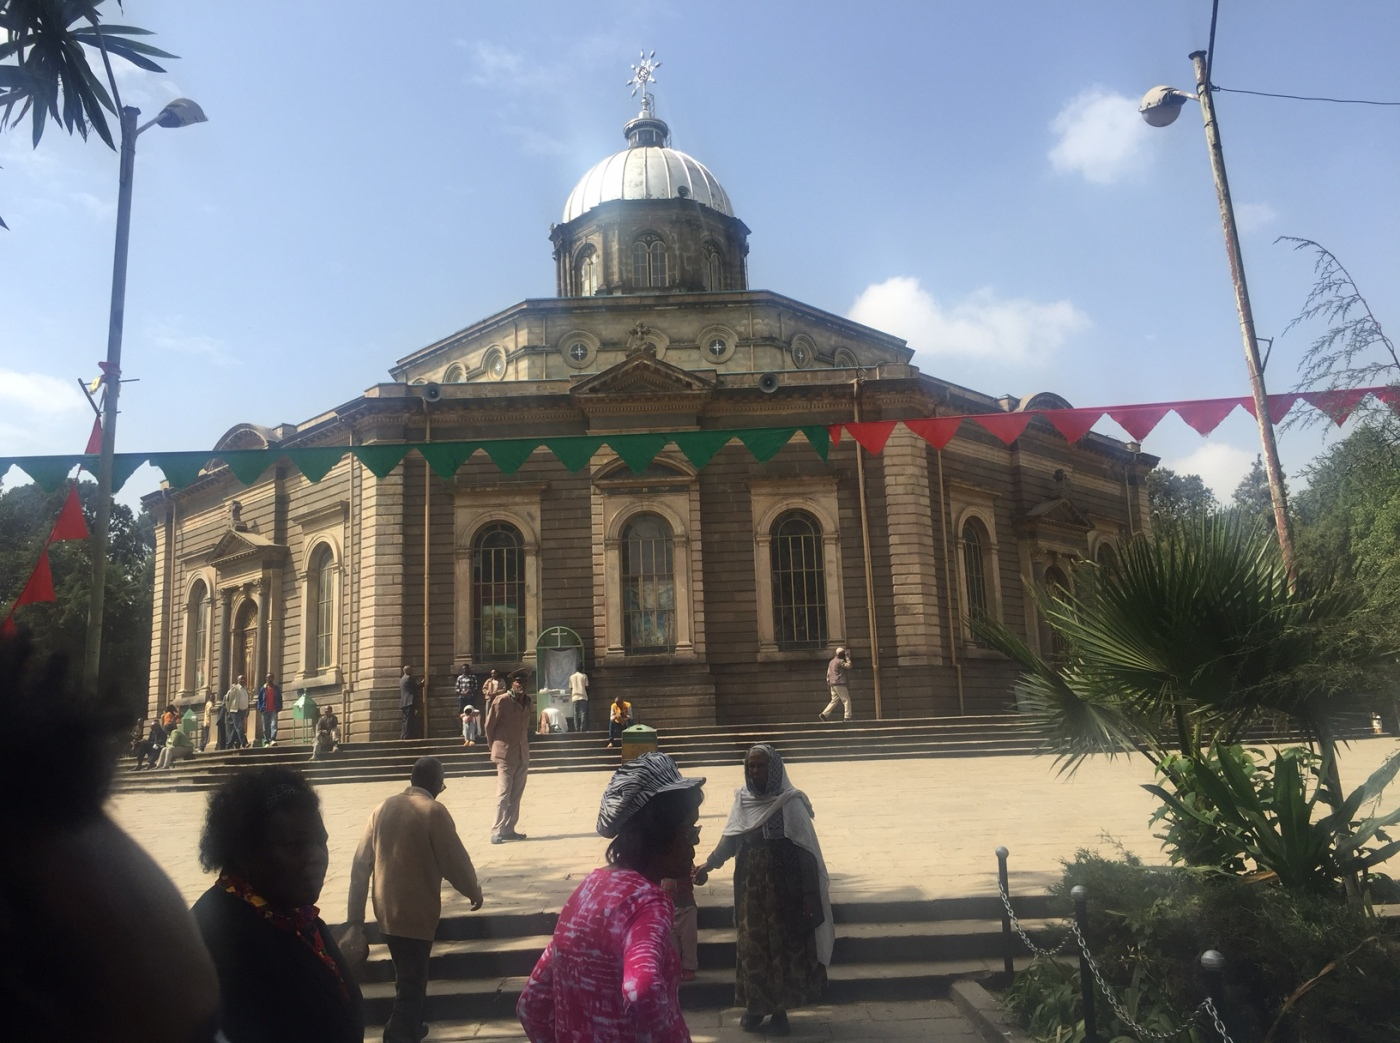 St. George's Cathedral in Addis Ababa, Ethiopia